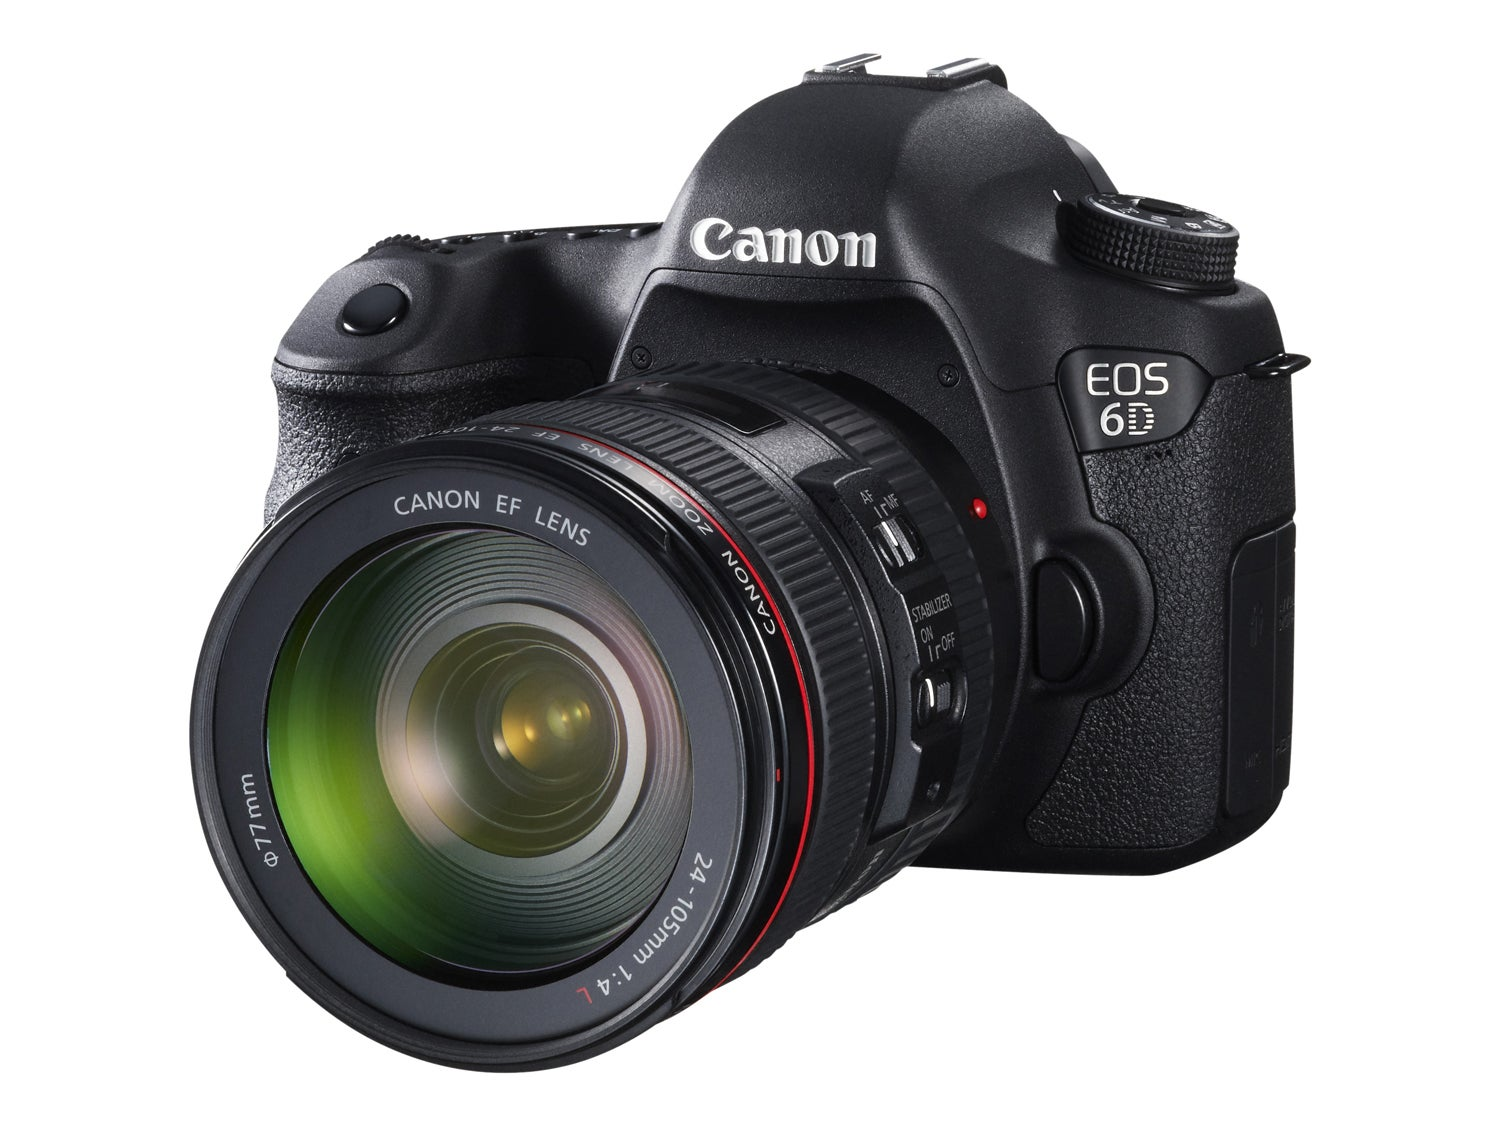 Camera Full Frame Sensor Dslr Cameras best full frame dslrs 2016 what digital camera canon eos 6d